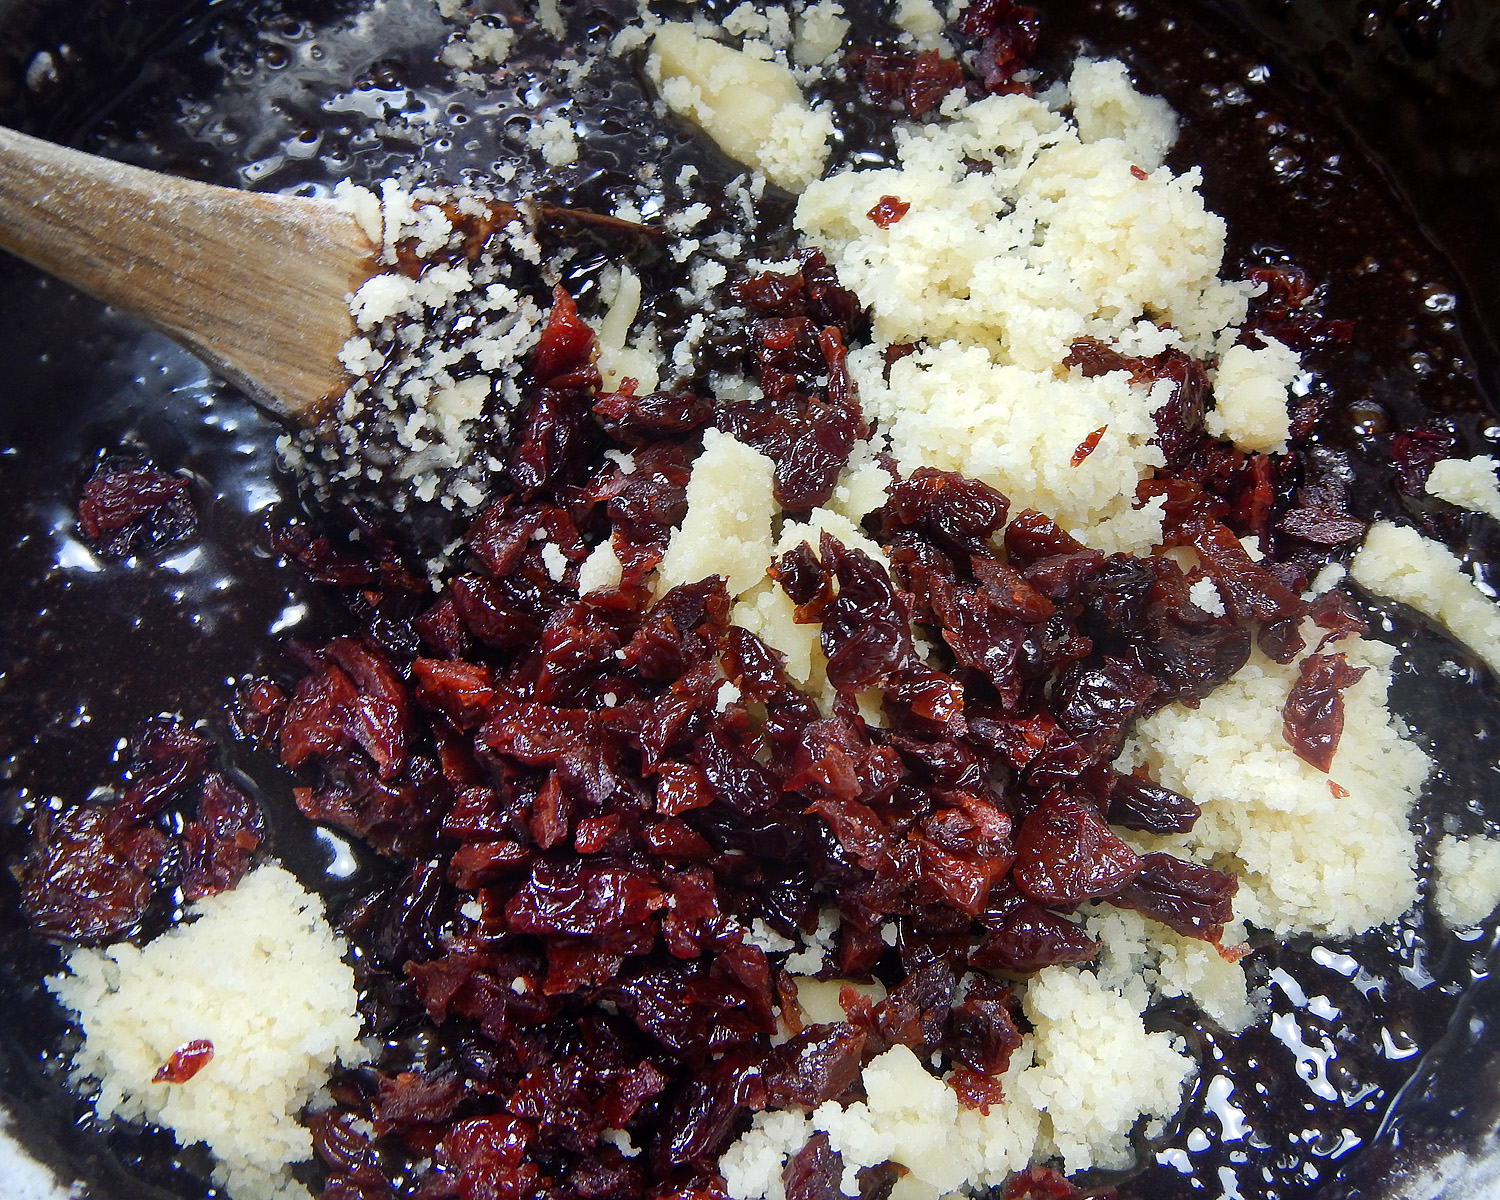 Dried Cherries and Almond Paste